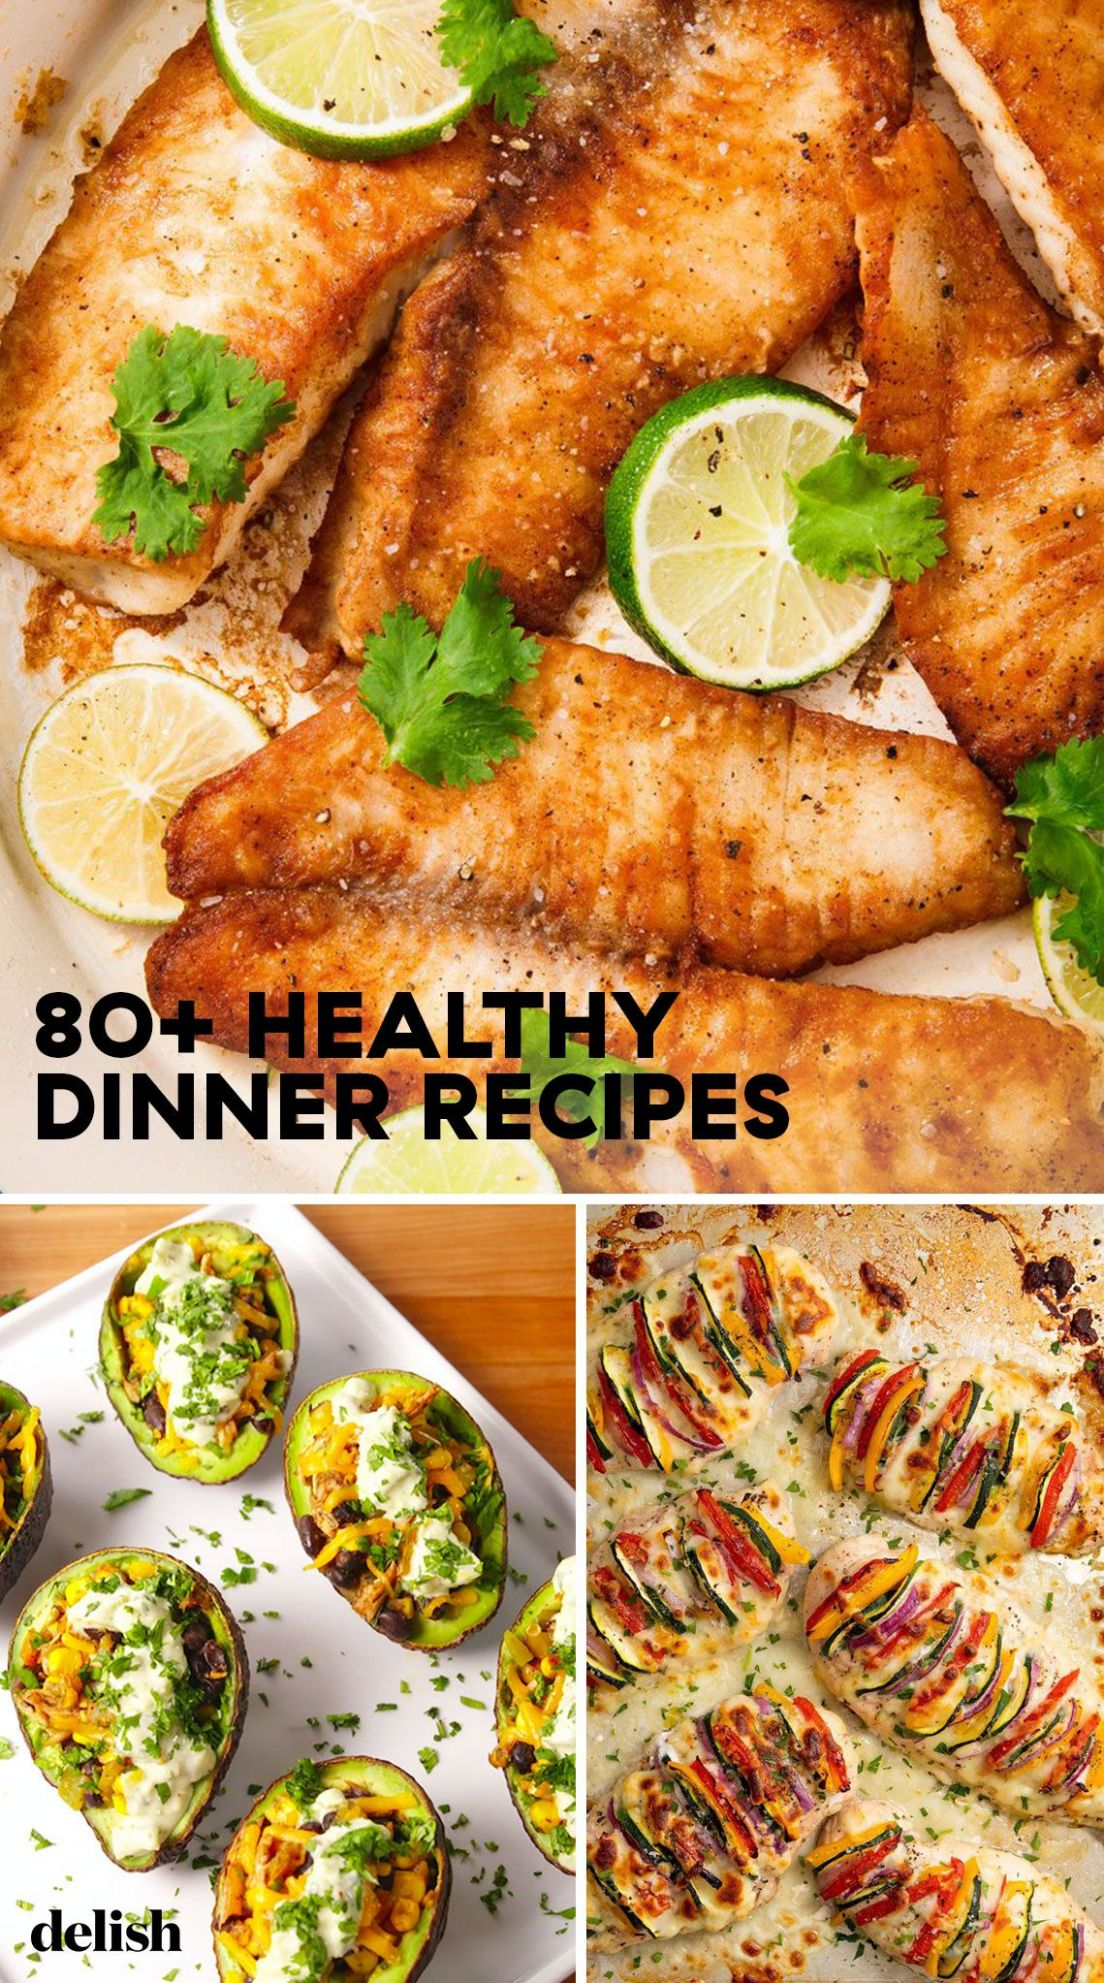 12+ Easy Healthy Dinner Ideas - Best Recipes for Healthy Dinners - Simple Recipes Healthy Dinner